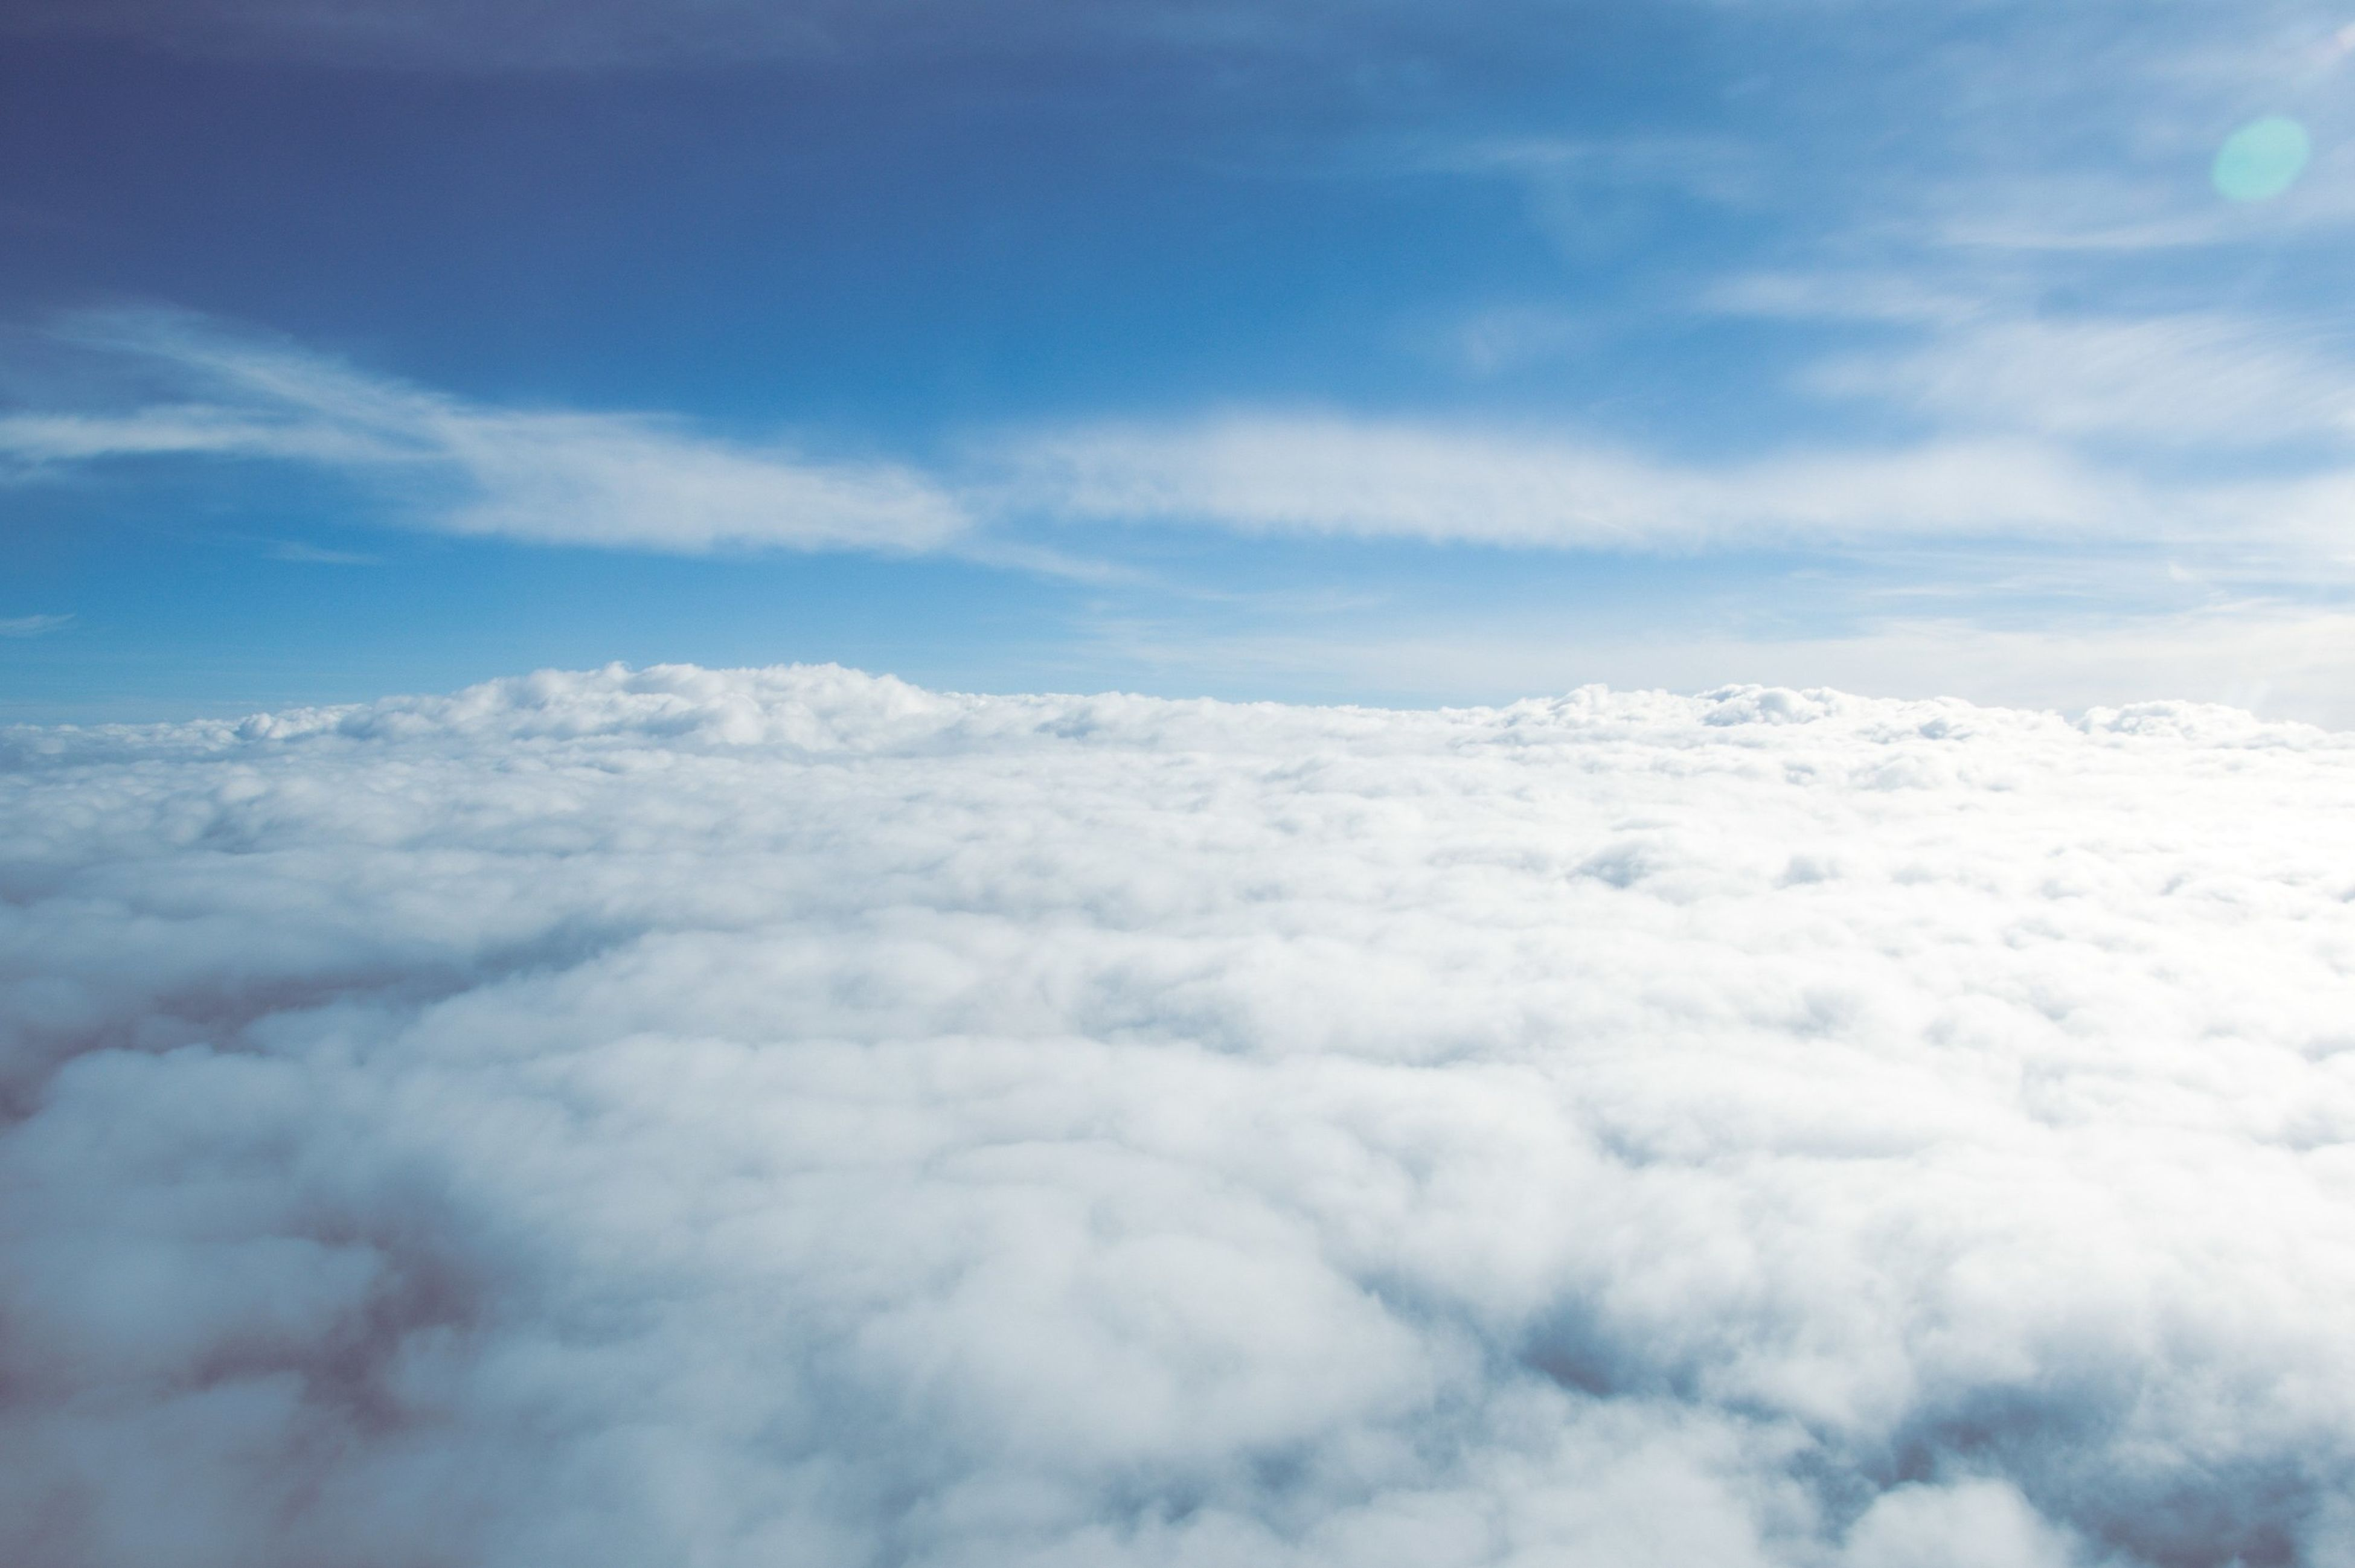 scenics, sky, beauty in nature, tranquil scene, tranquility, cloud - sky, nature, white color, cloudscape, weather, cloudy, cloud, idyllic, blue, sky only, majestic, aerial view, mountain, day, white